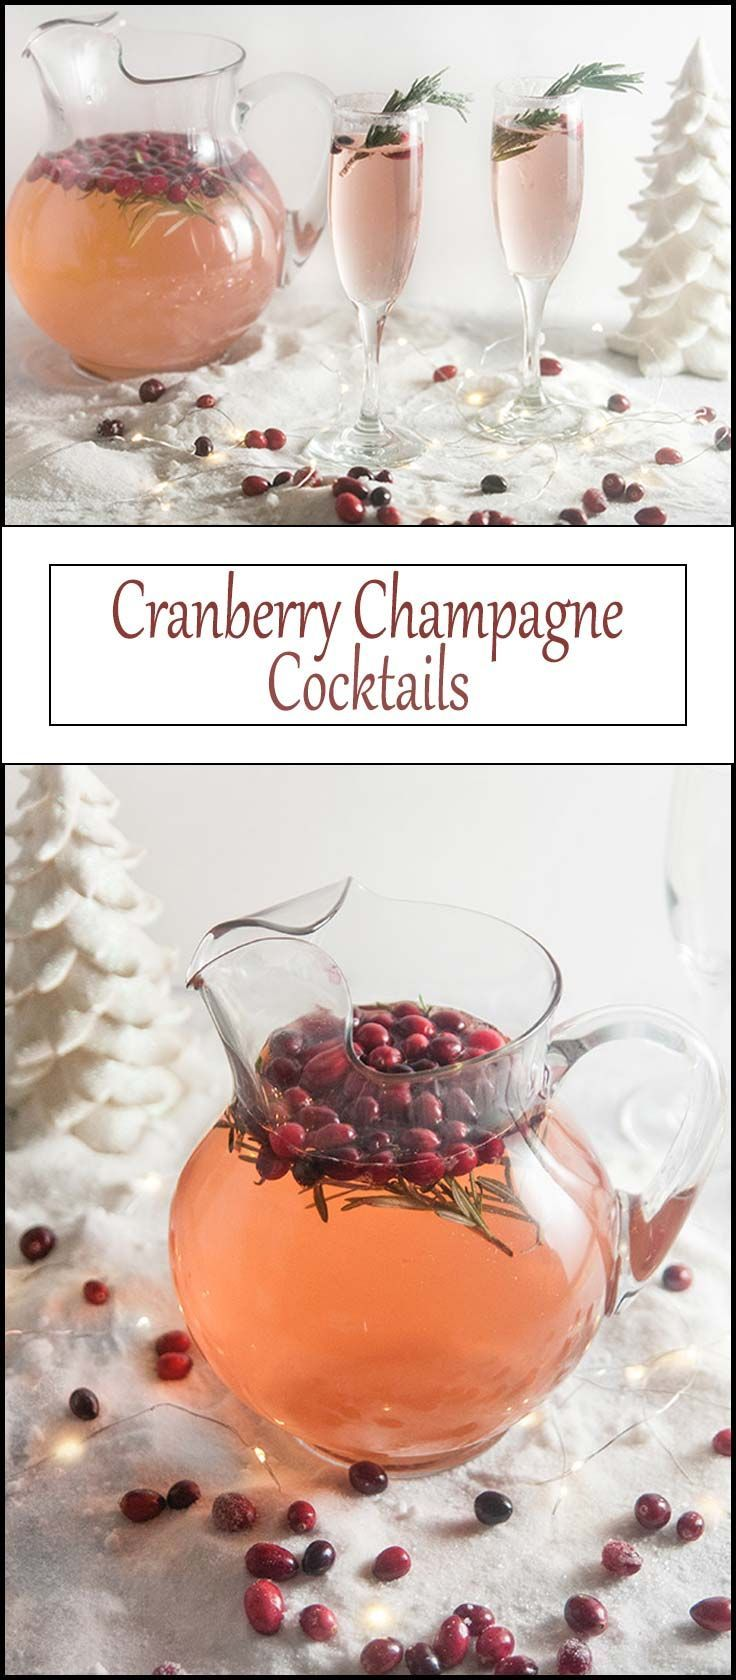 Christmas Cranberry Champagne Cocktails from www.seasonedsprinkles.com